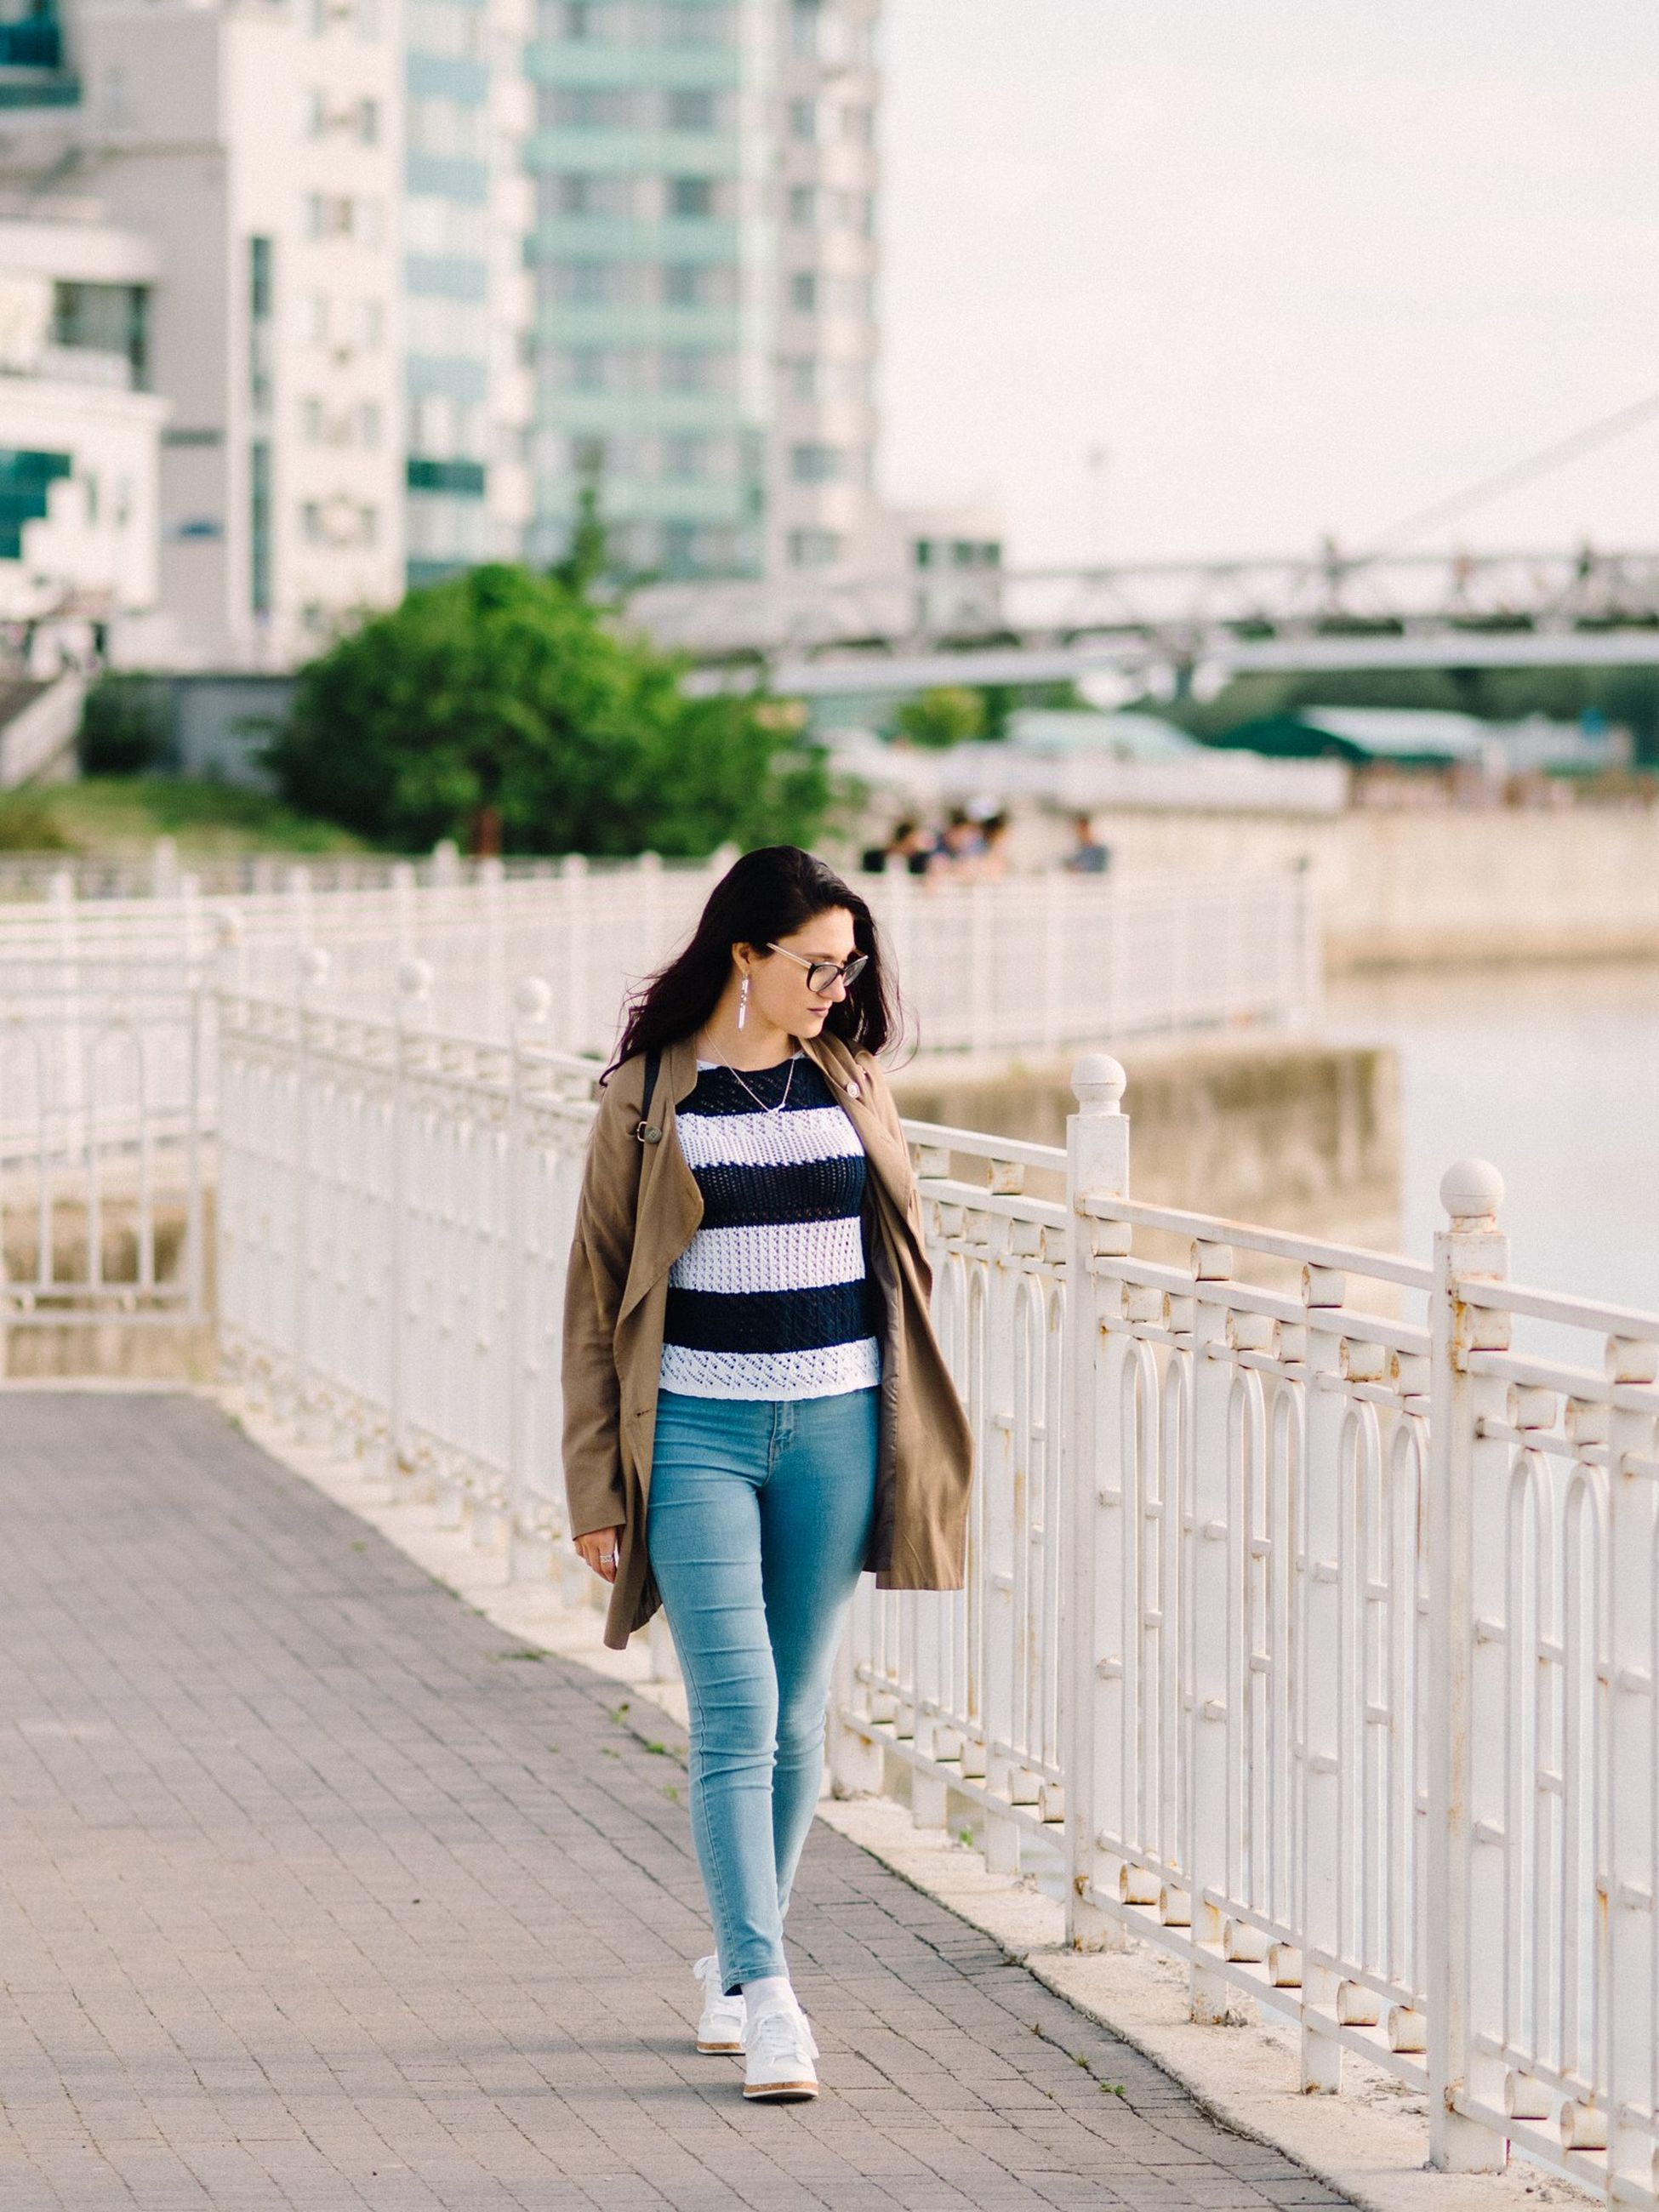 architecture, full length, one person, casual clothing, young adult, building exterior, built structure, city, front view, railing, young women, real people, lifestyles, adult, leisure activity, women, day, standing, focus on foreground, beautiful woman, outdoors, hairstyle, bridge - man made structure